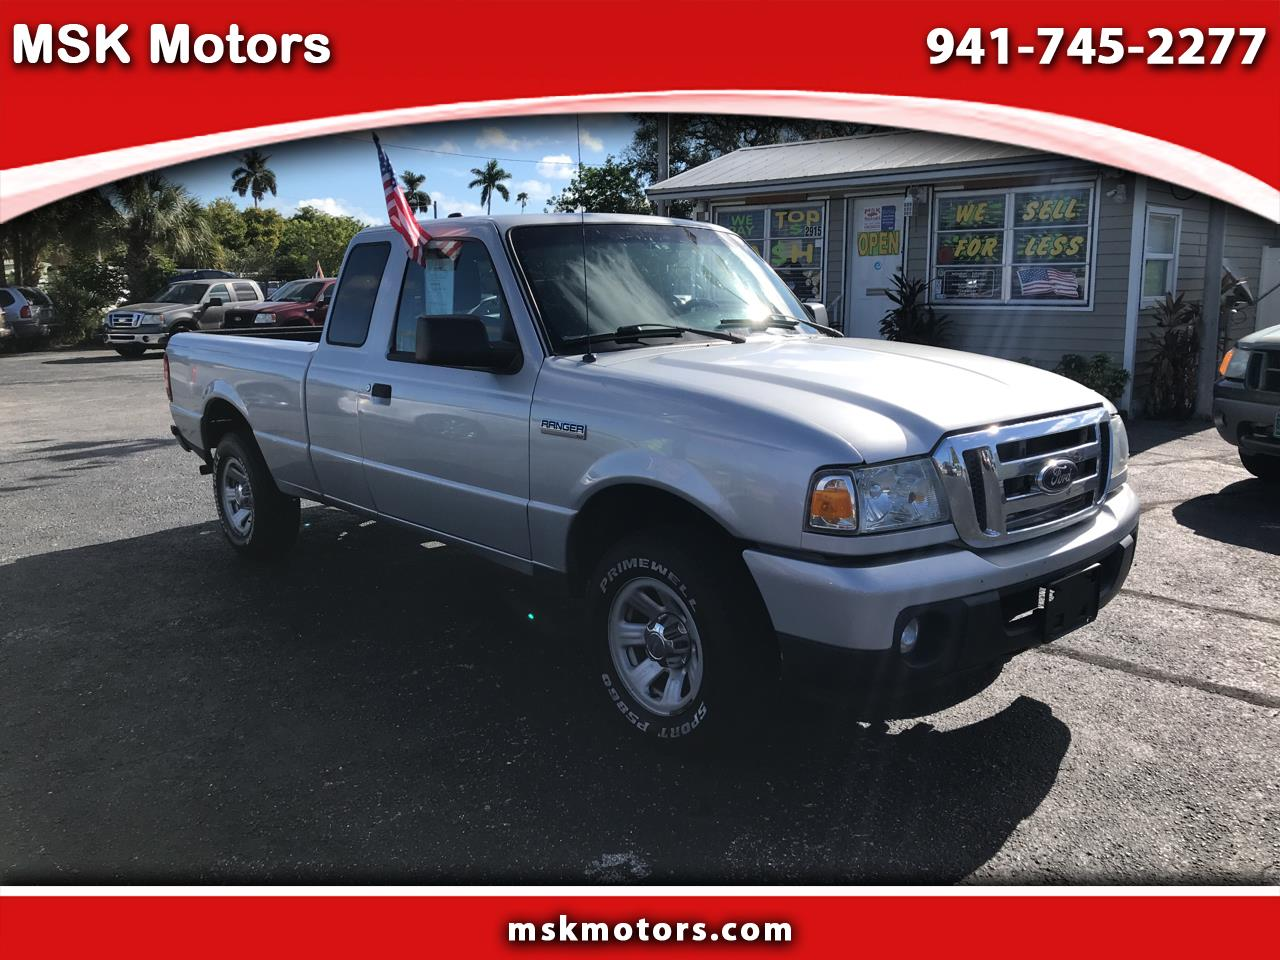 2011 Ford Ranger XLT SuperCab 2-Door 2WD